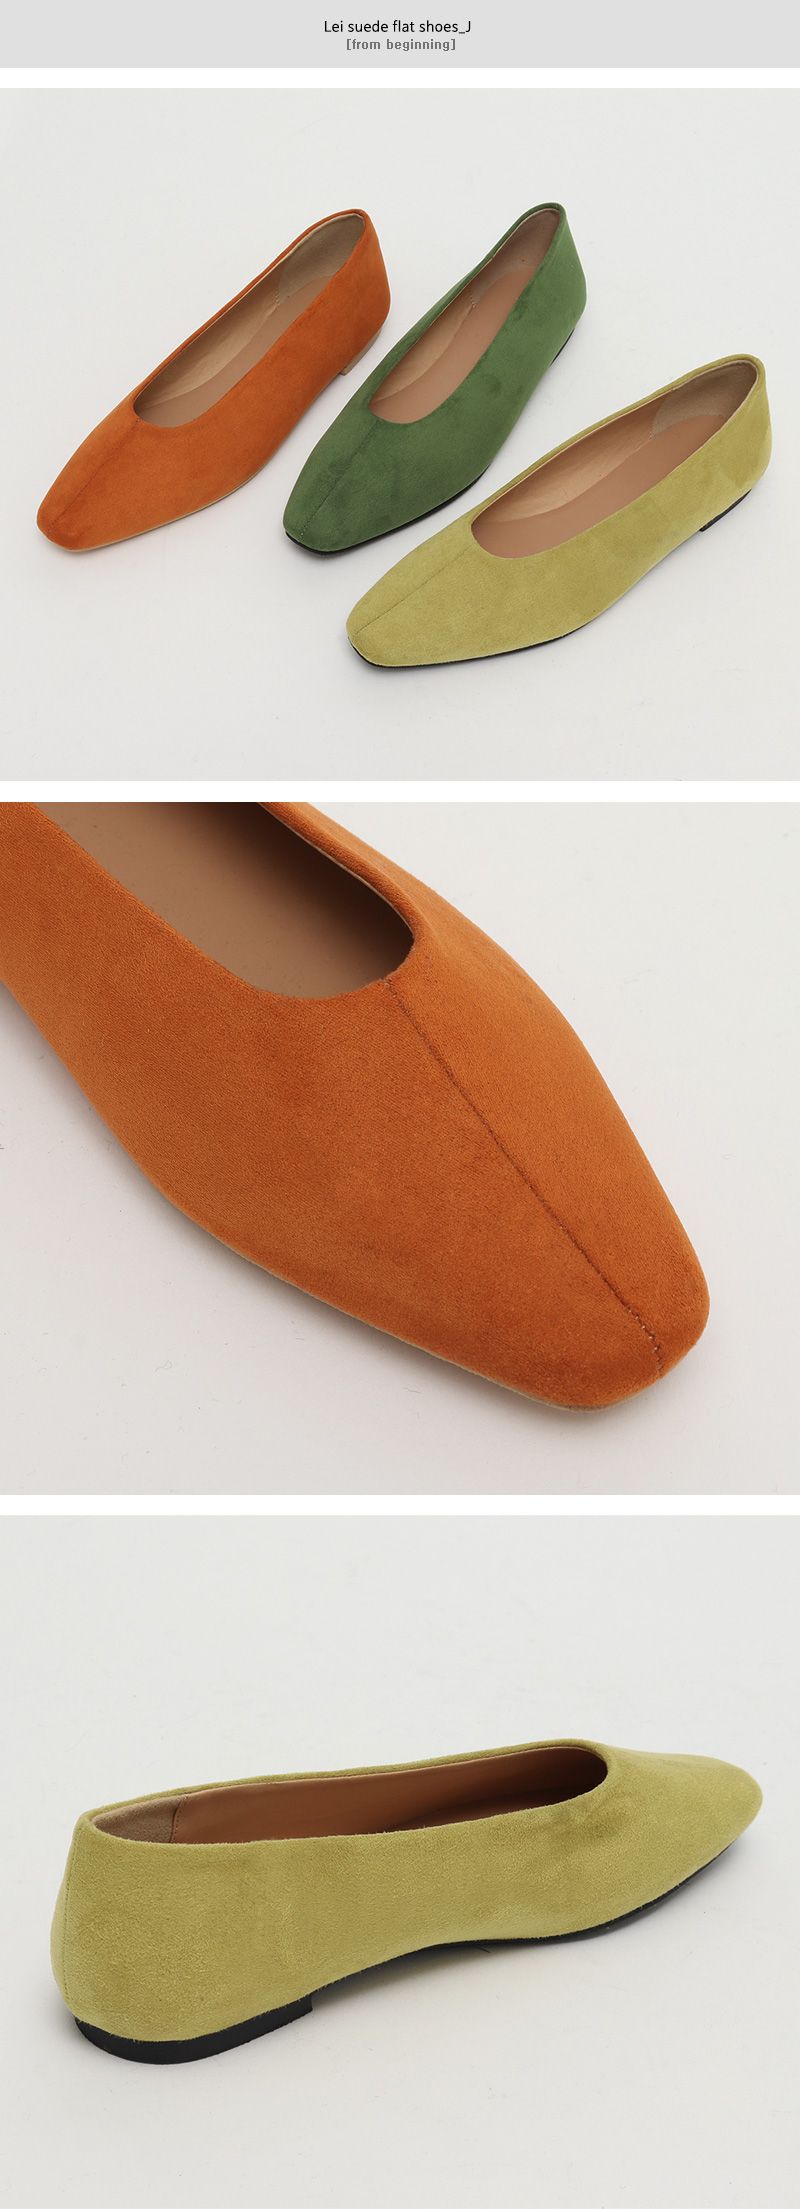 Lei suede flat shoes_J (size : 230,235,240,245,250)